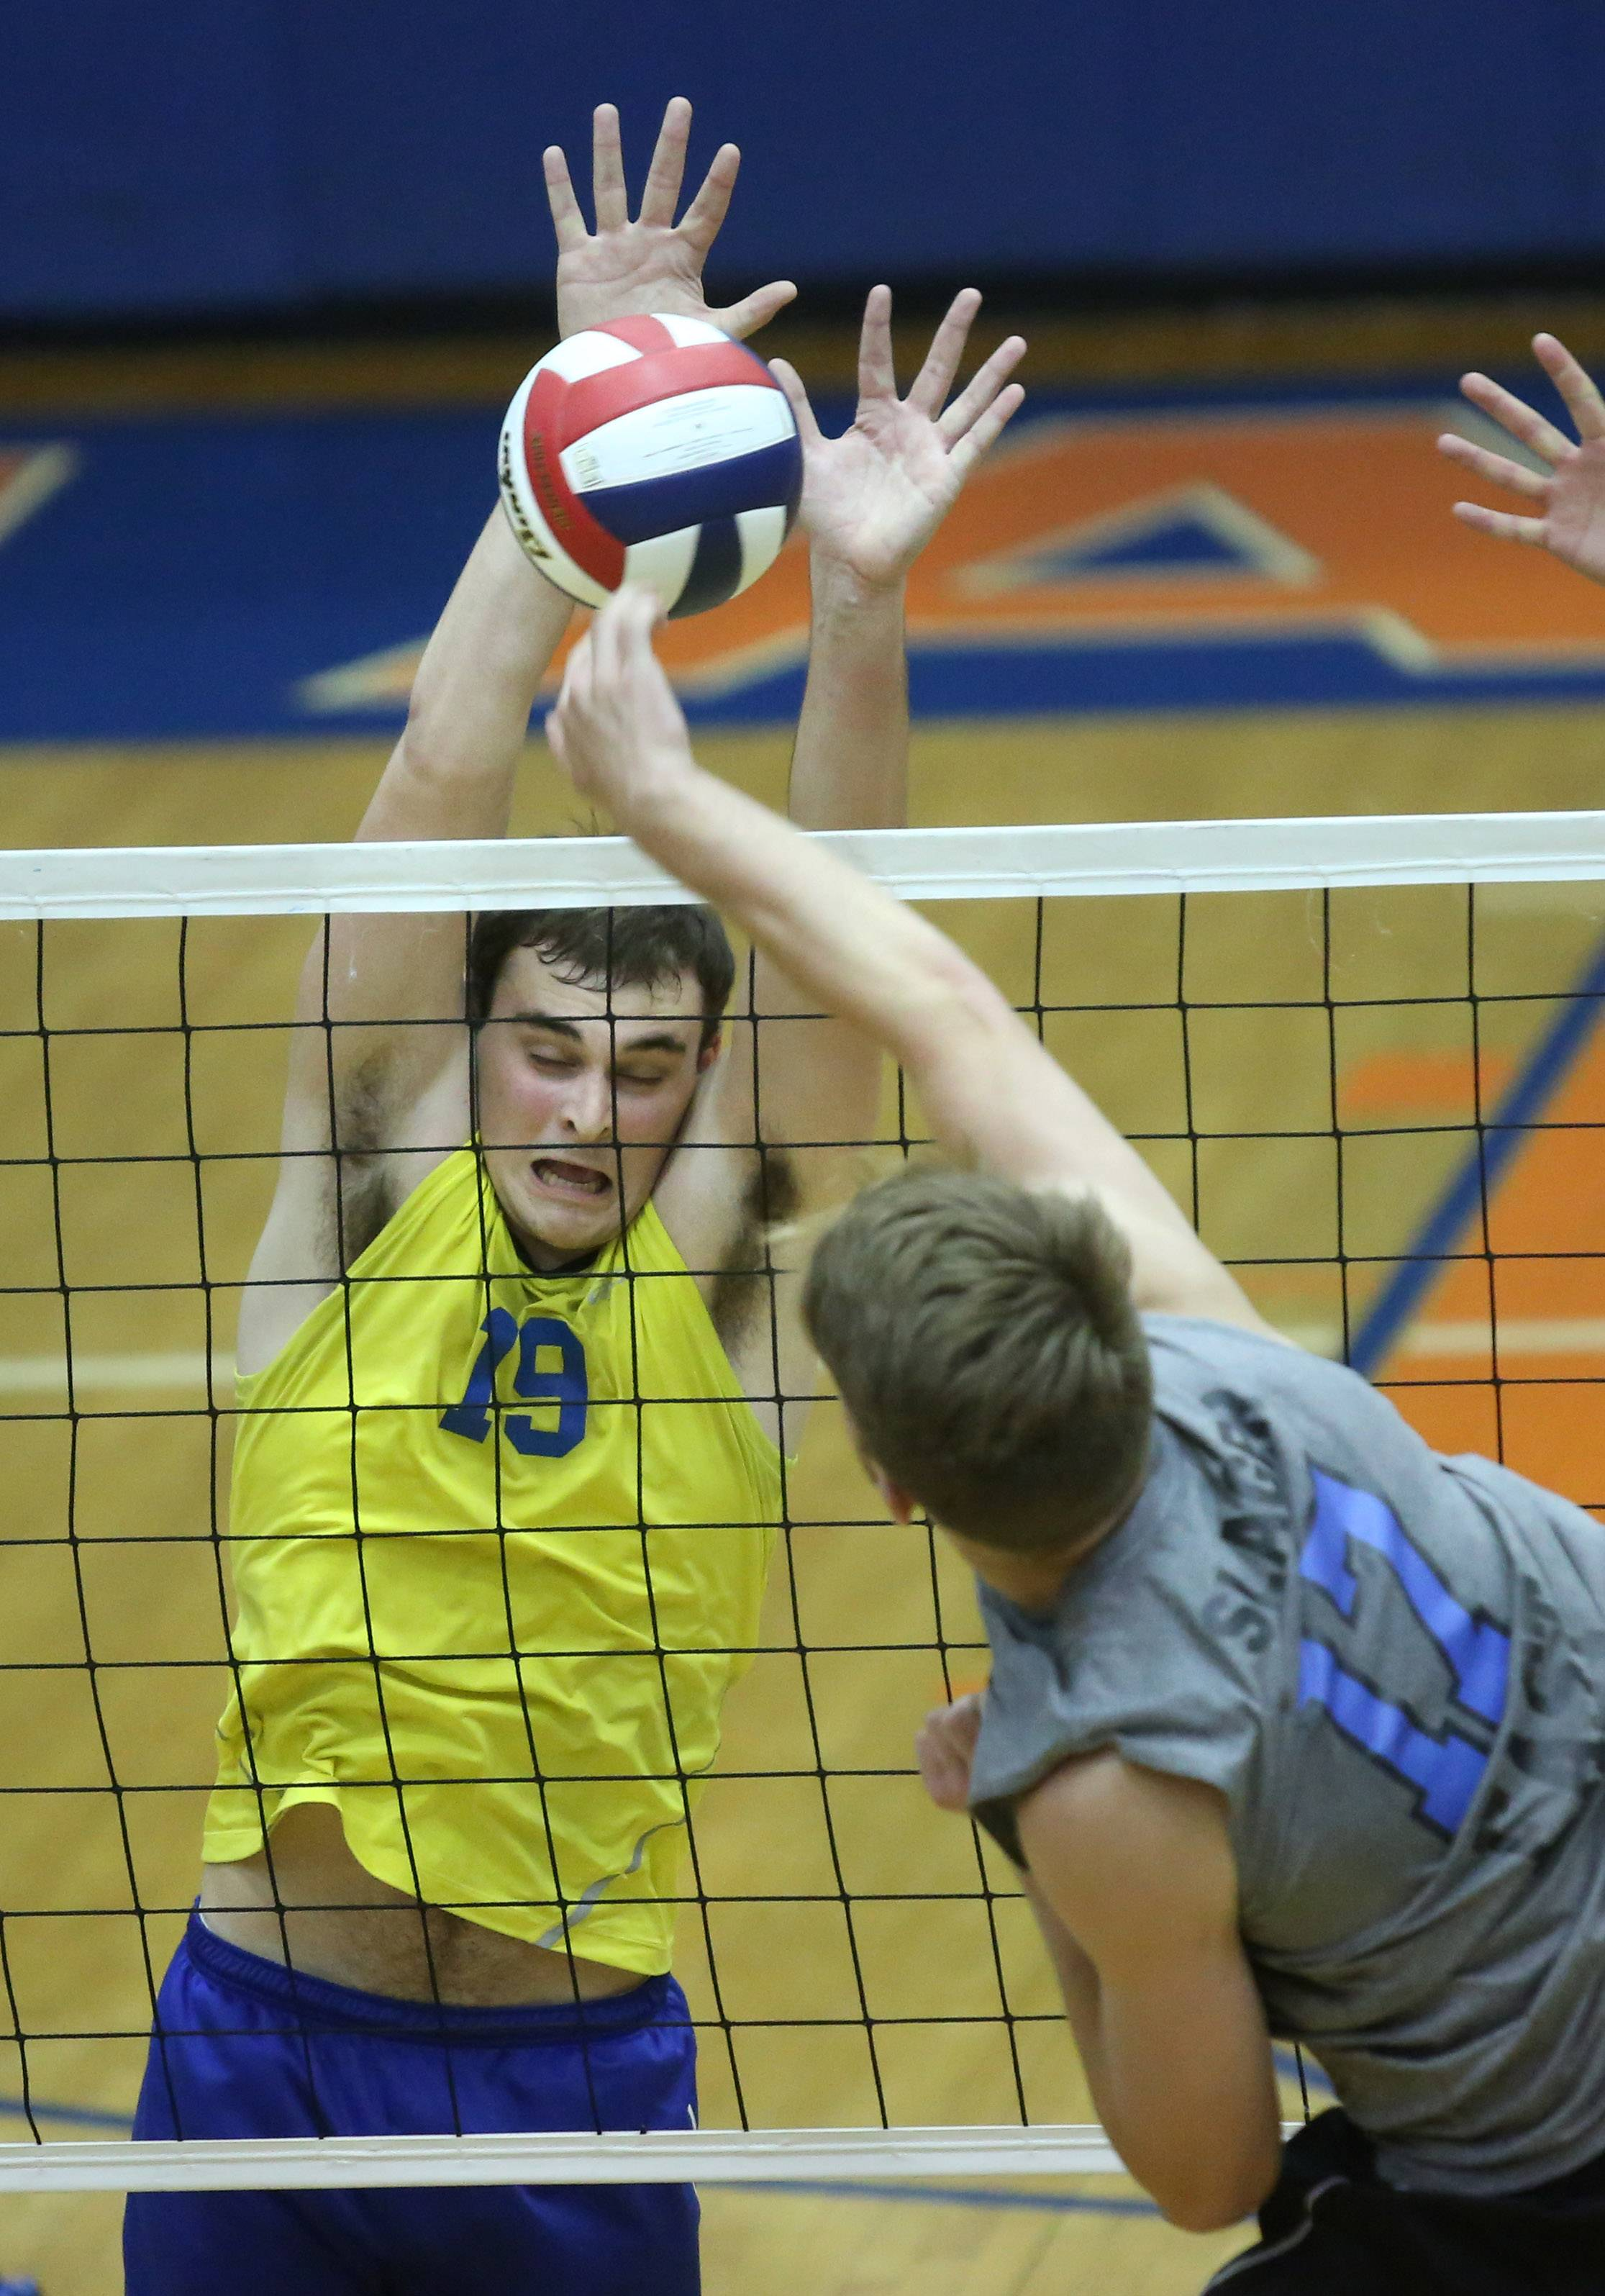 Warren's Max Bongratz blocks a spike by Lincoln-Way East's Carson Slager.